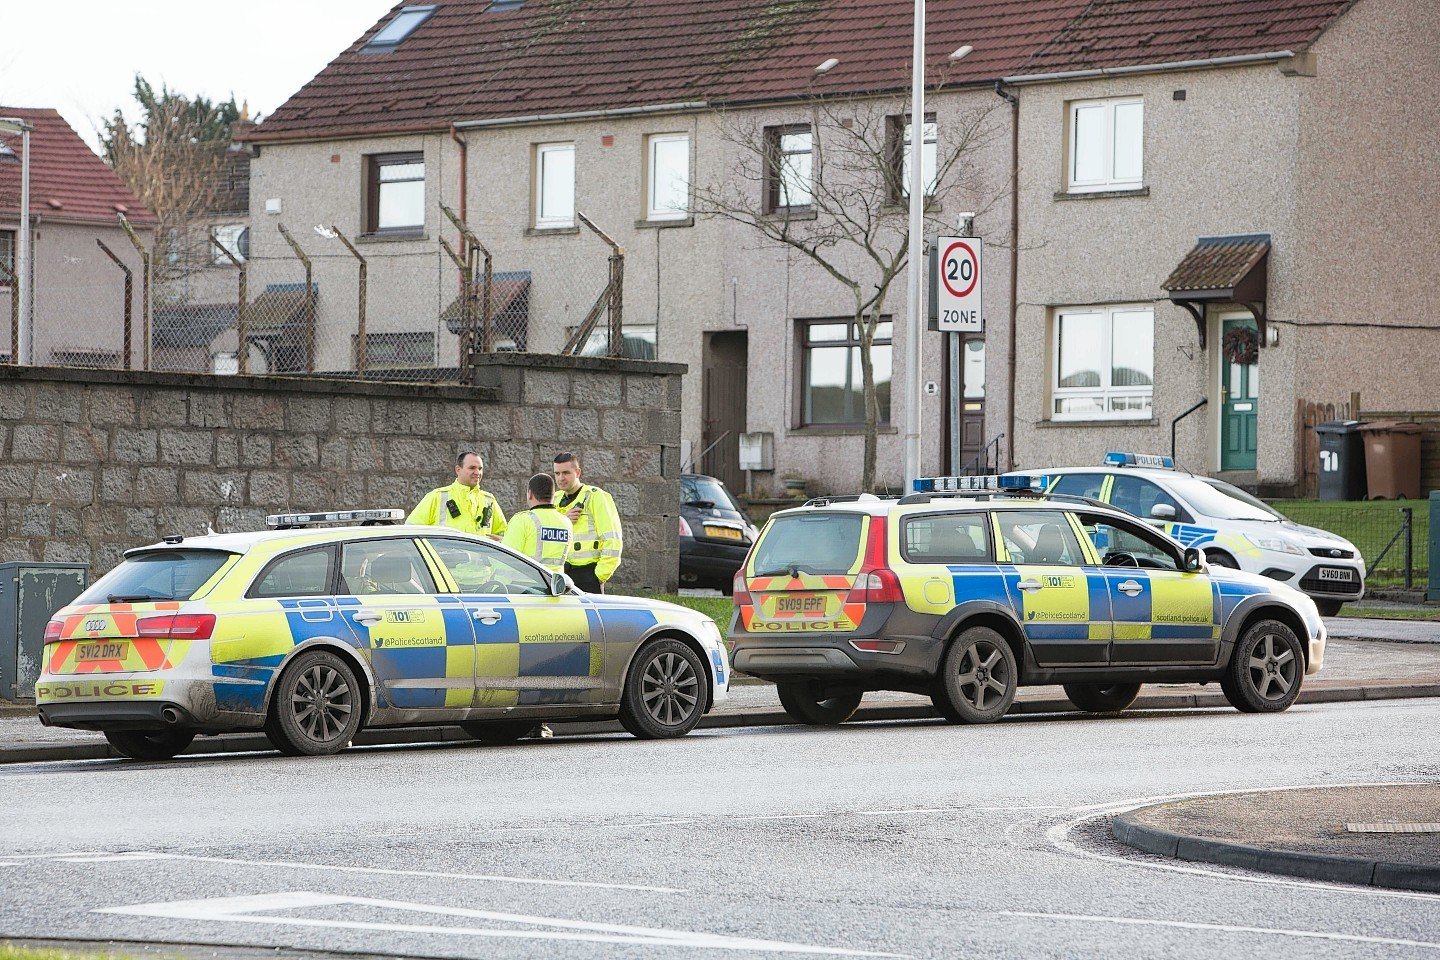 Police cars involved in the chase in Aberdeen